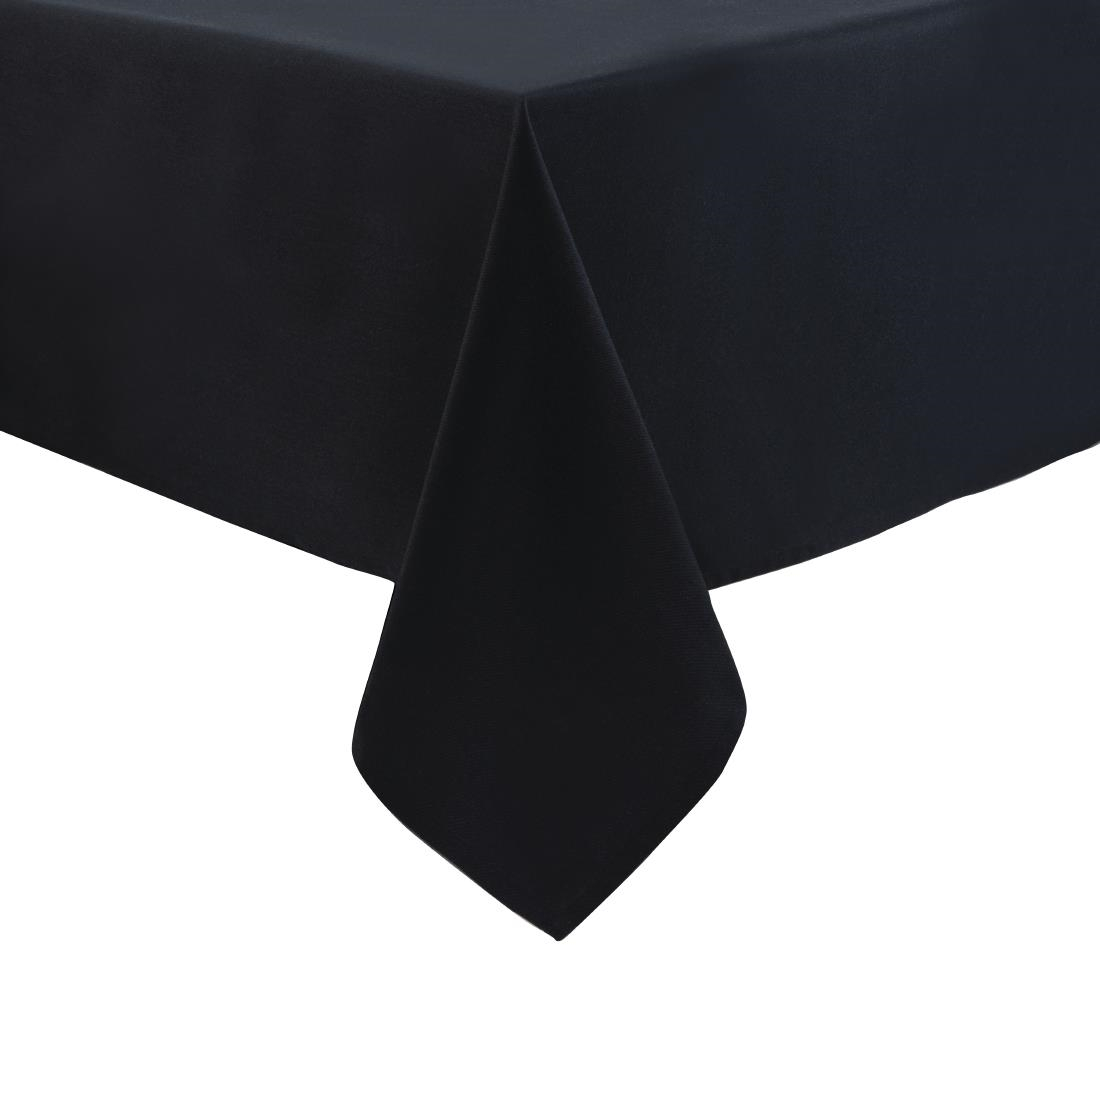 Mitre Essentials Occasions Tablecloth Black 2290 x 2290mm